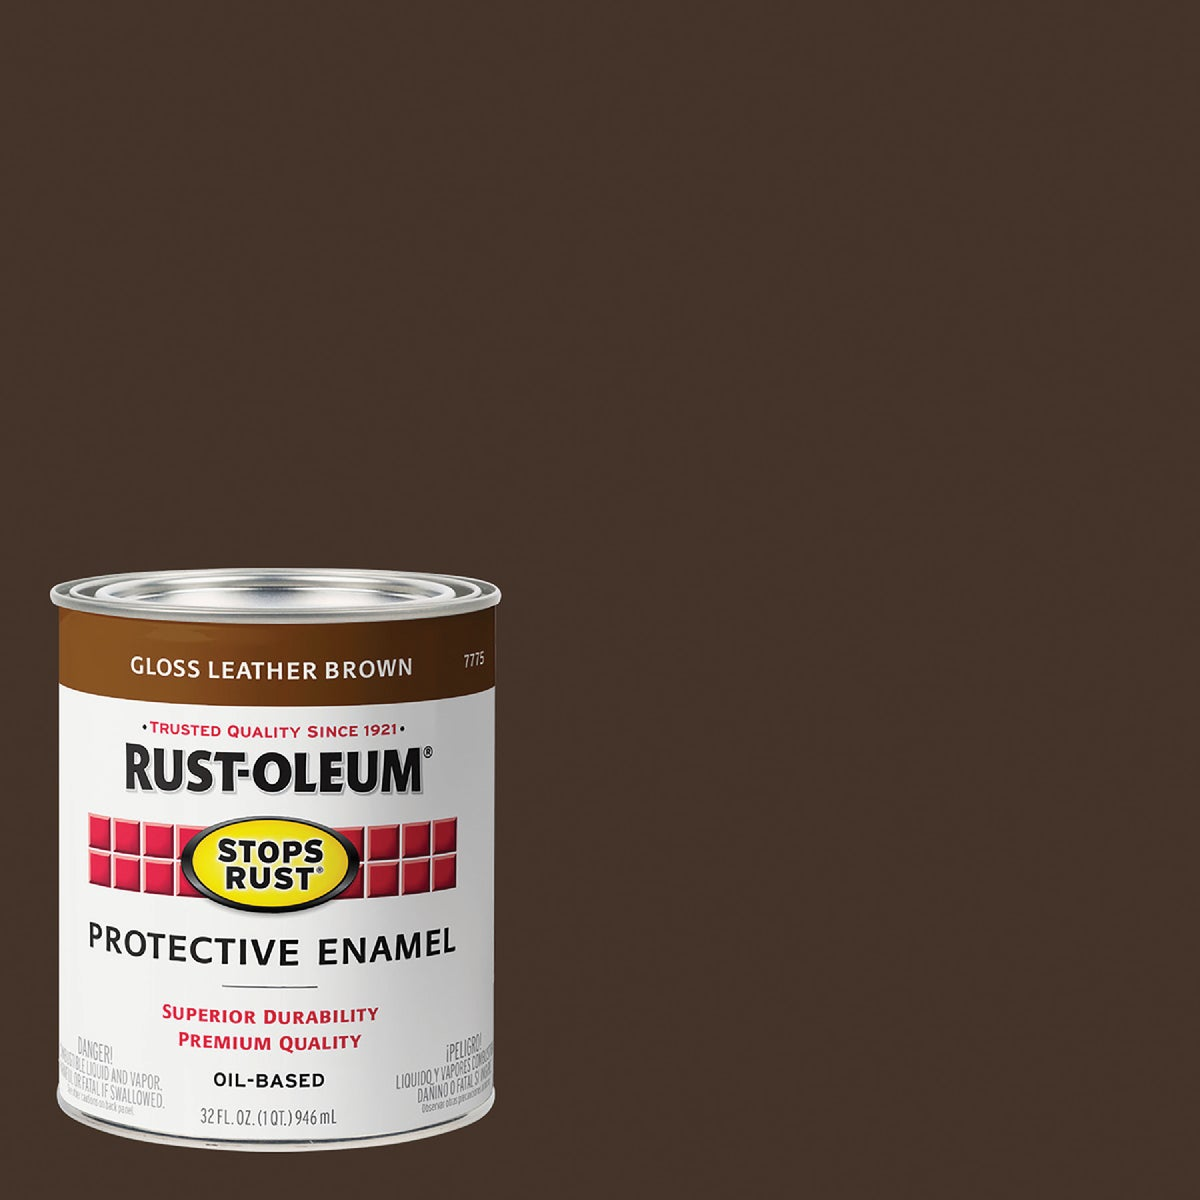 LEATHER BROWN ENAMEL - 7775-502 by Rustoleum